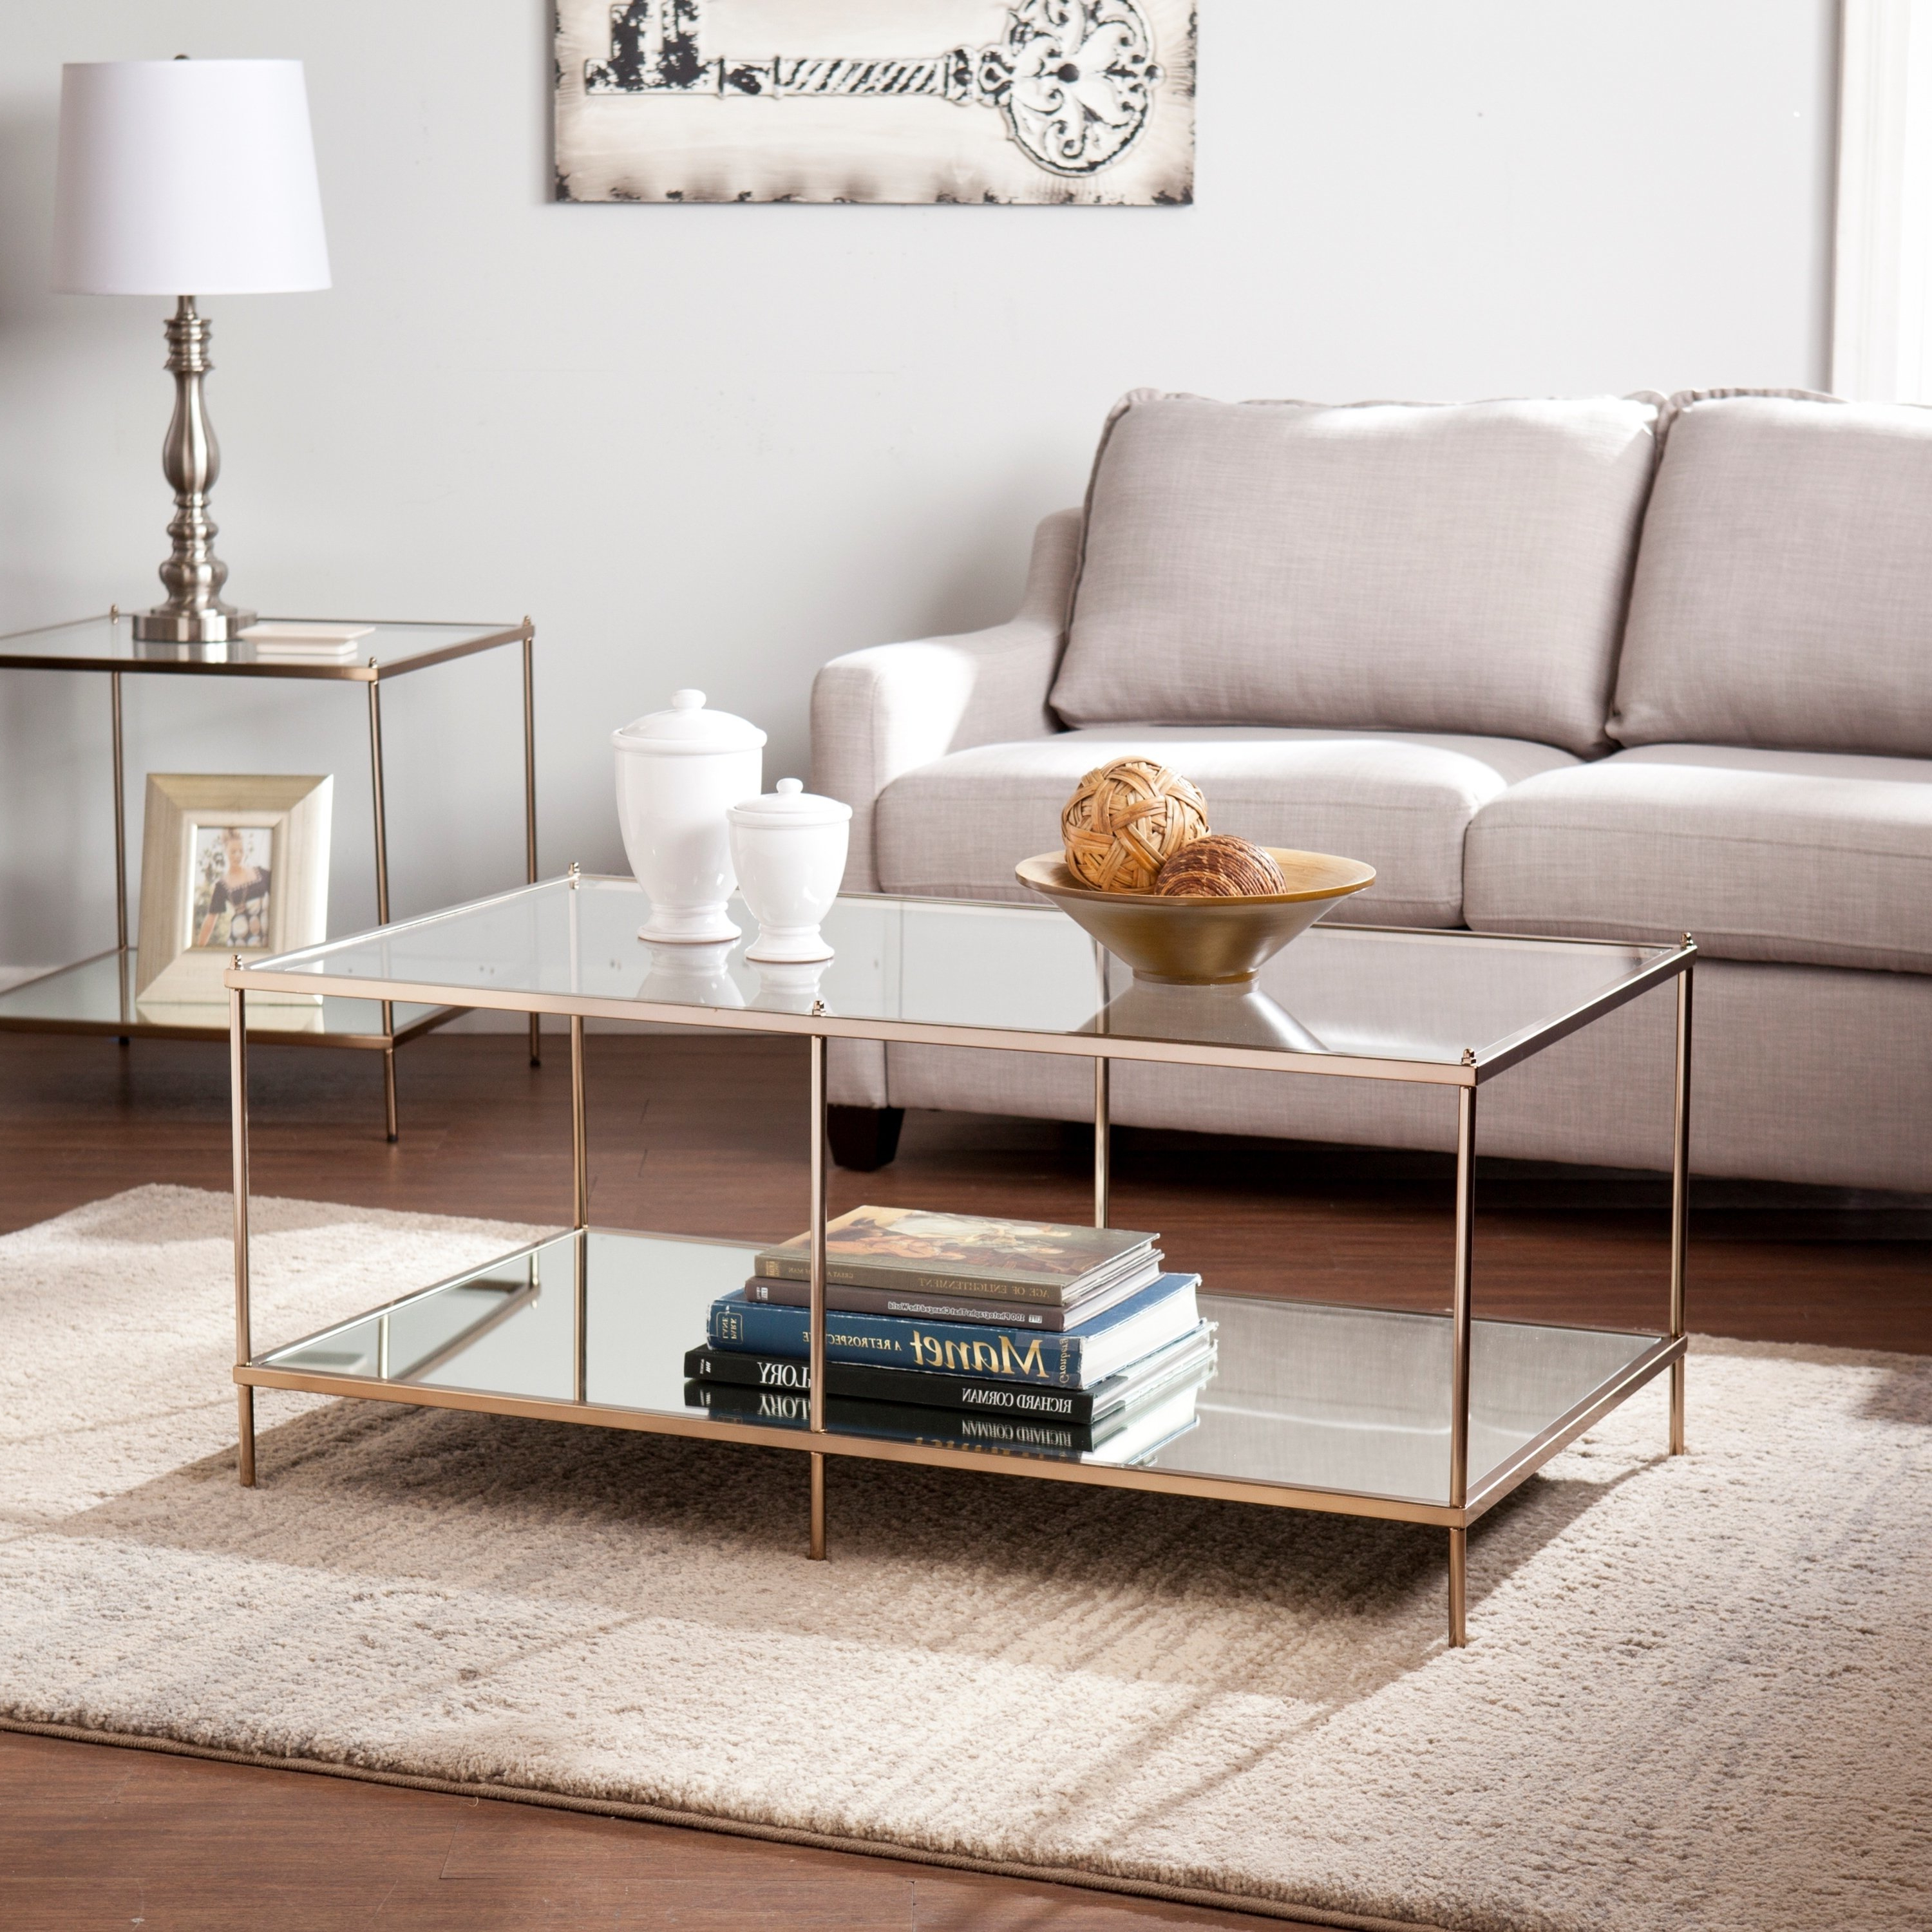 Most Recently Released Harper Down Oversized Sofa Chairs Throughout Shop Harper Blvd Kendall Goldtone Glass Top Coffee Table – Free (View 19 of 20)